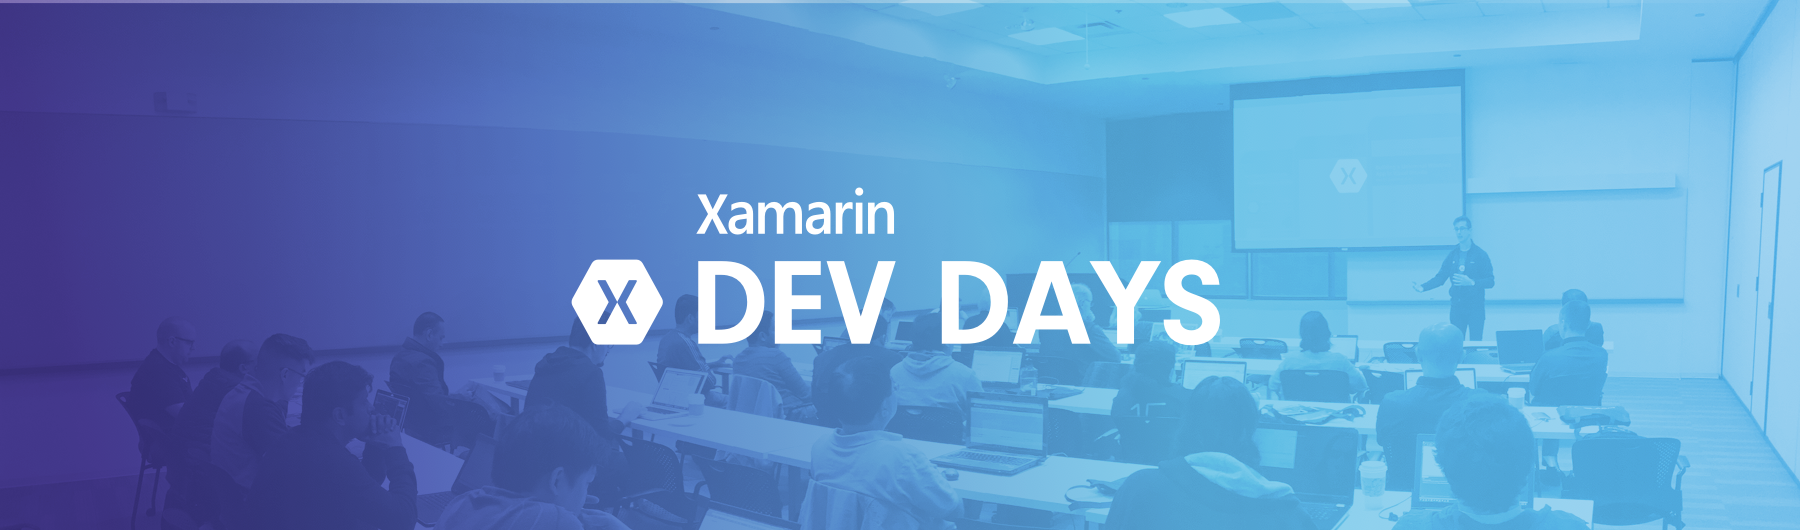 Xamarin Dev Days - Seville